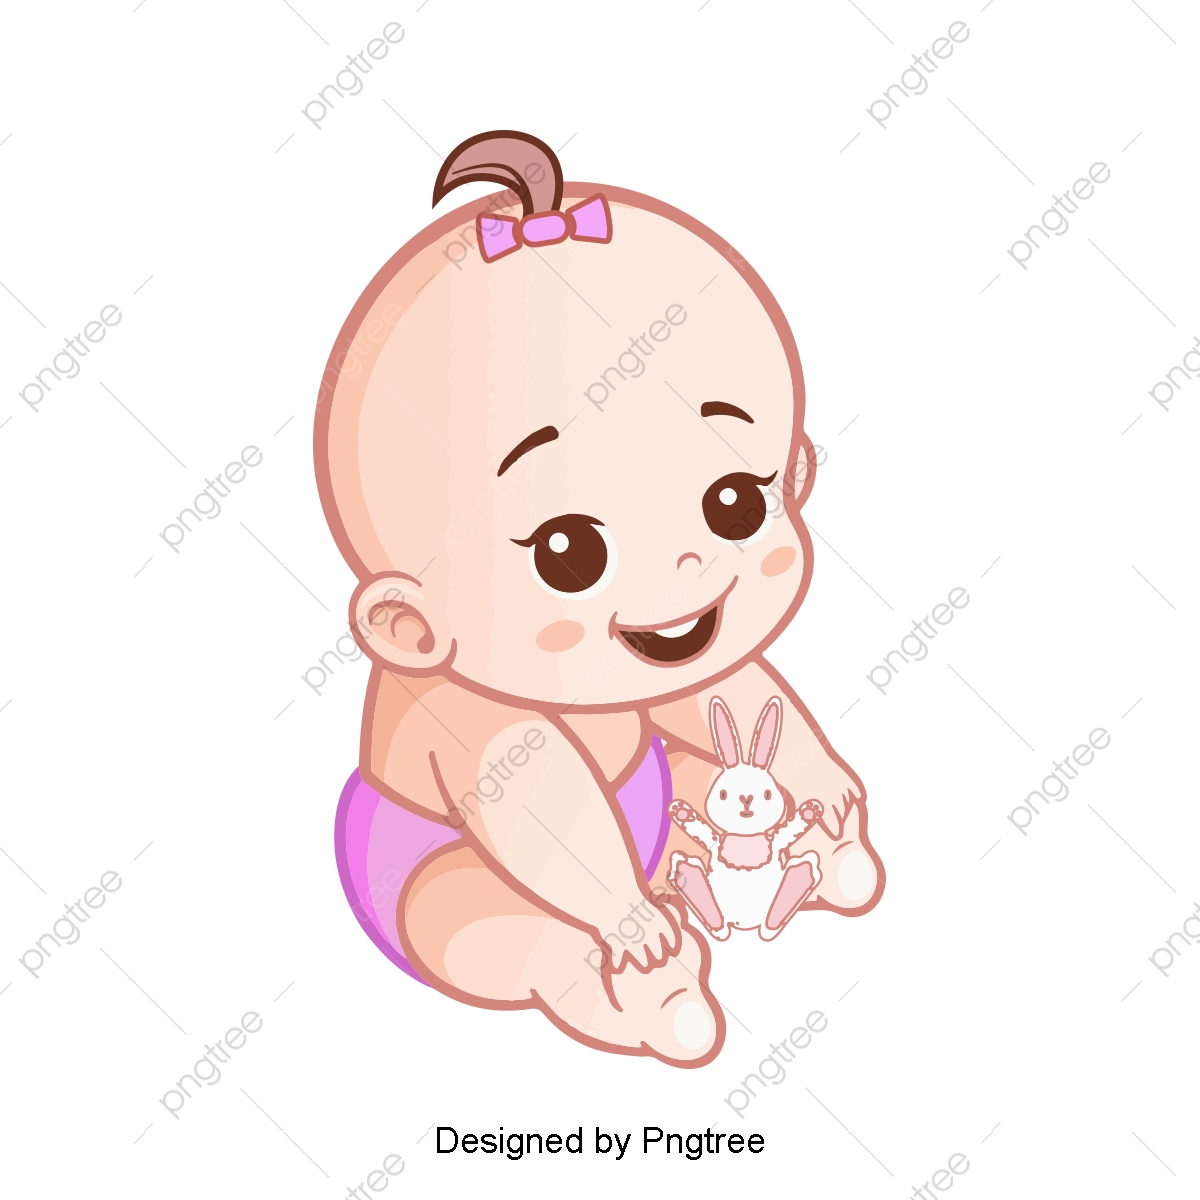 Baby Baby Clipart Mother Png And Vector With Transparent Background For Free Download